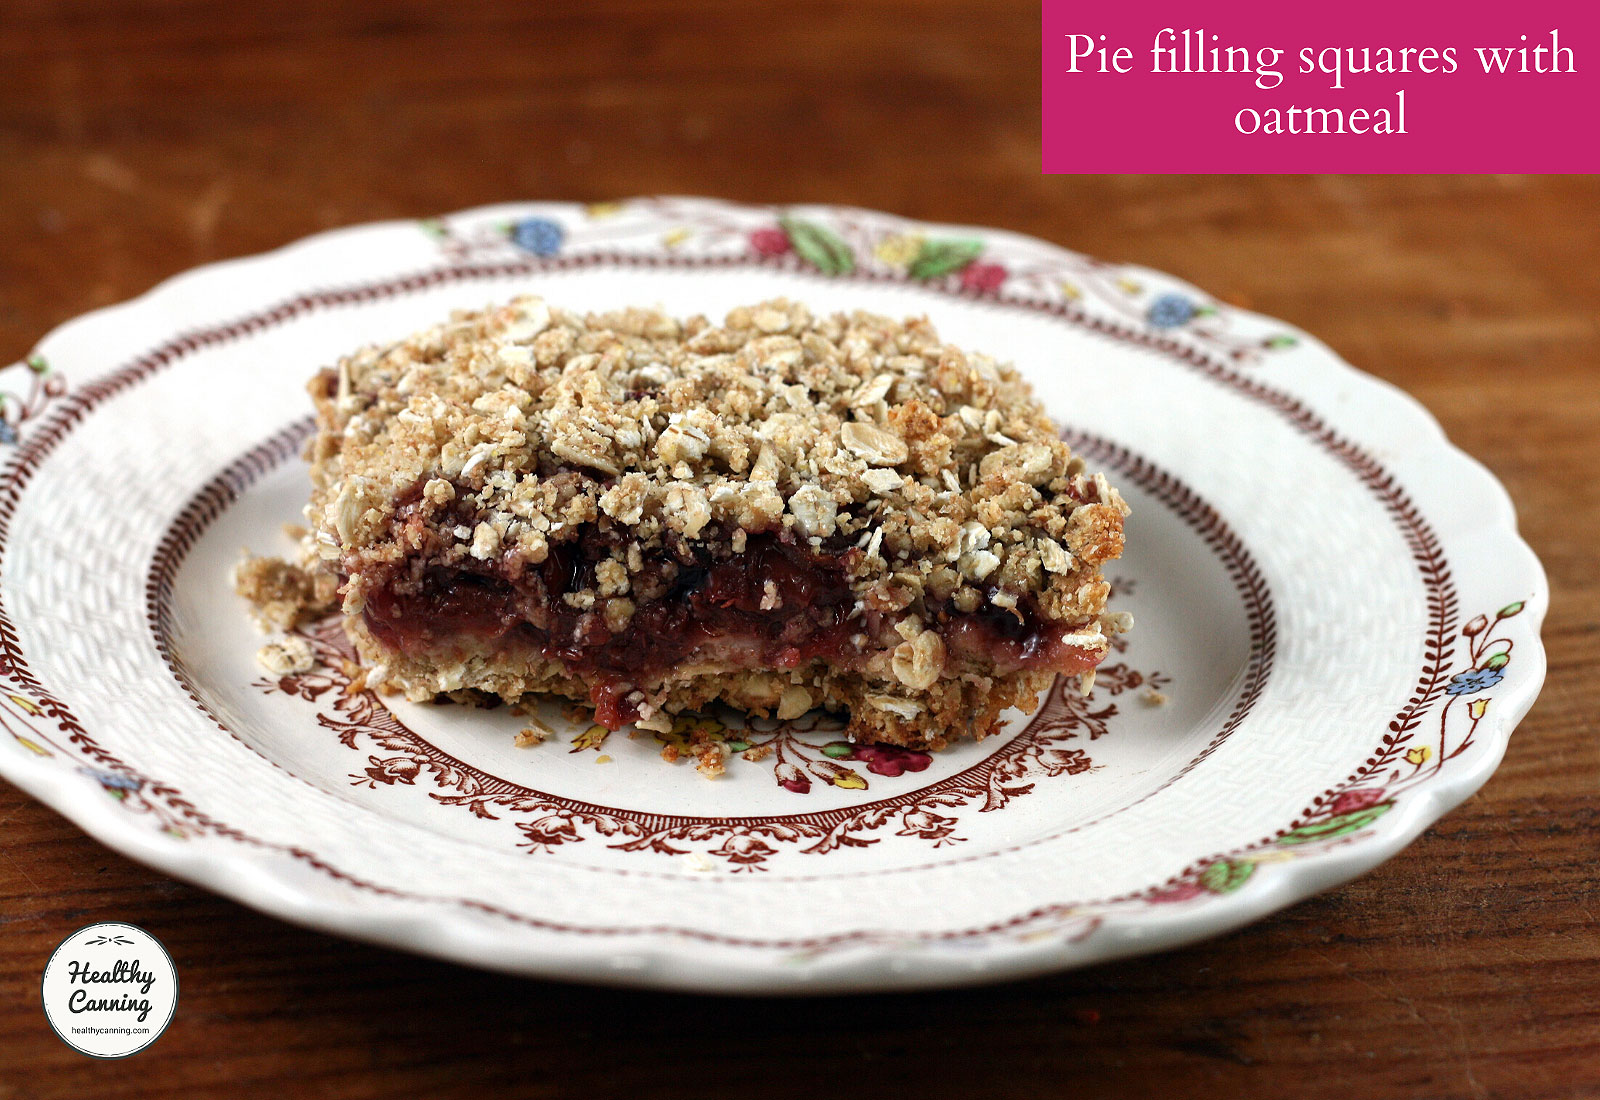 Photo of pie filling squares with oatmeal